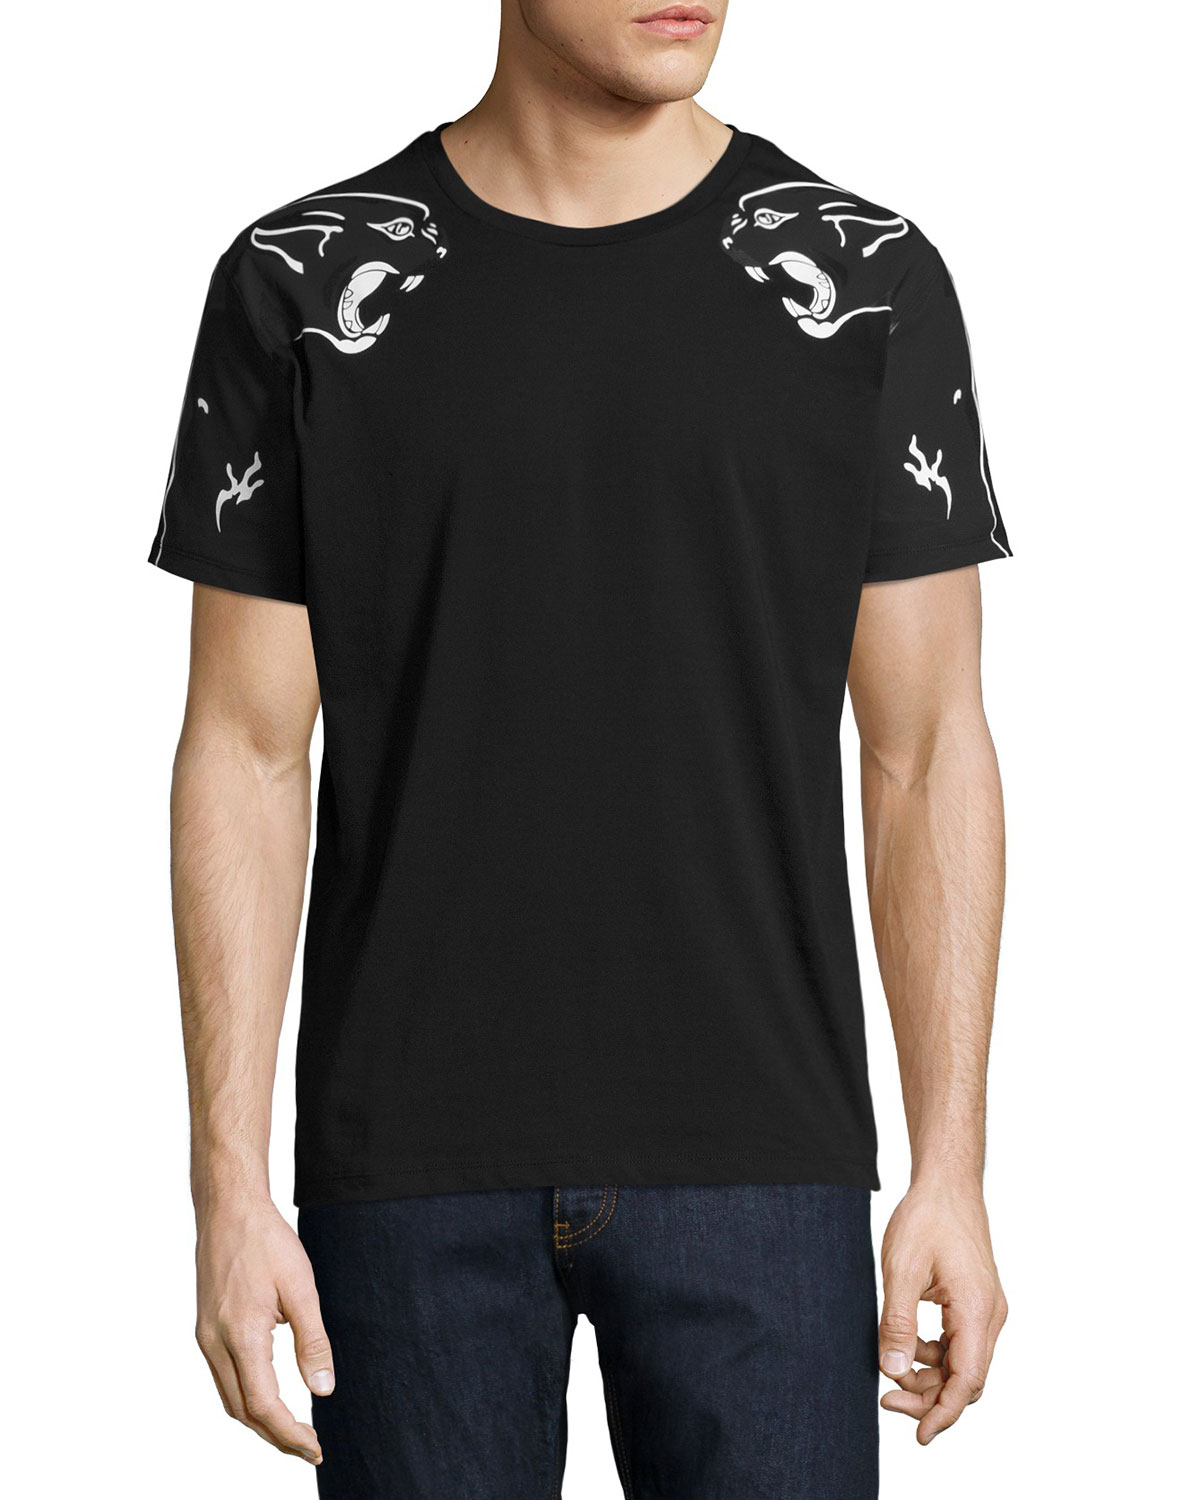 Panther-Print T-Shirt, Black